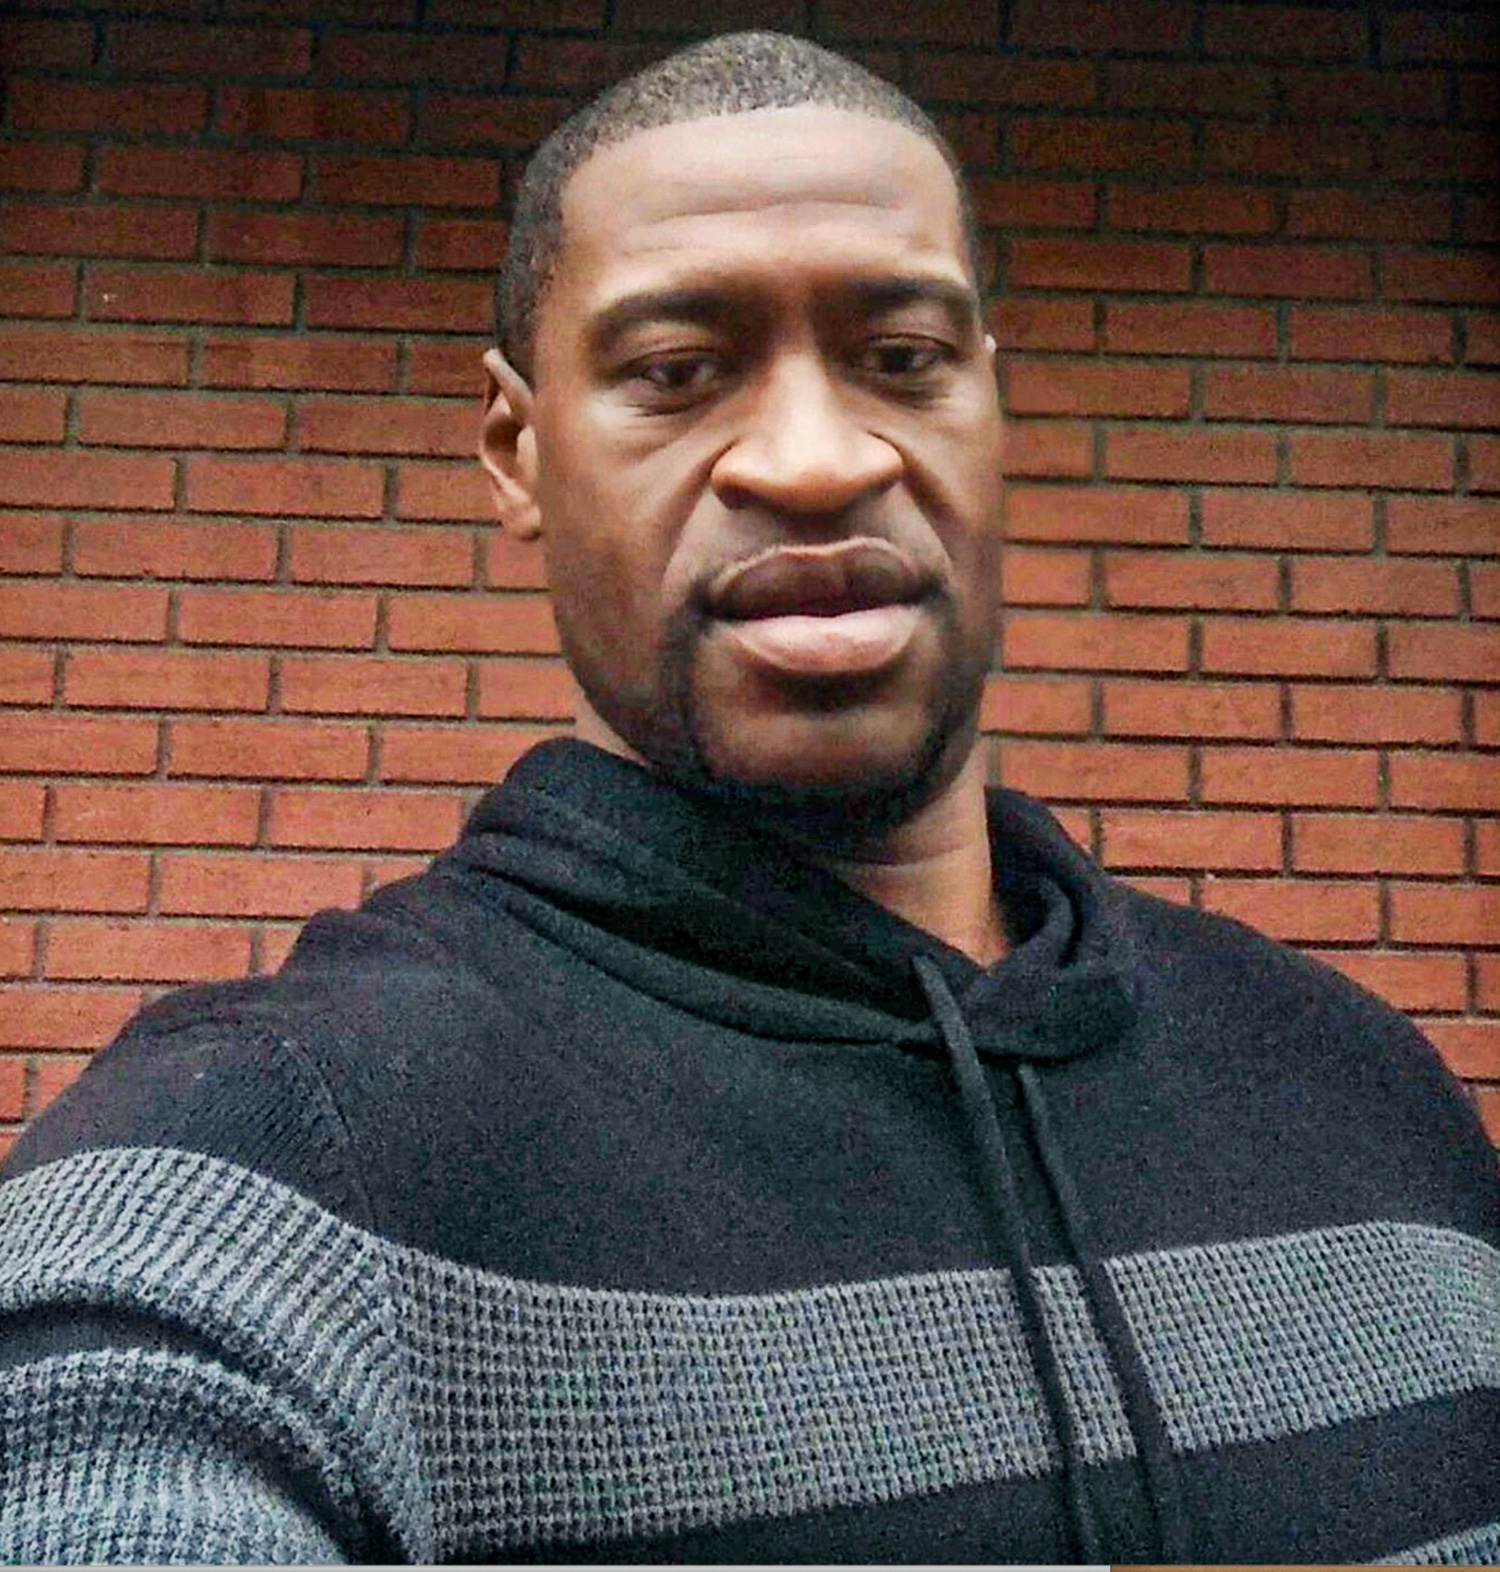 George Floyd, the man who was killed by police officers in Minneapolis on May 25, 2020.